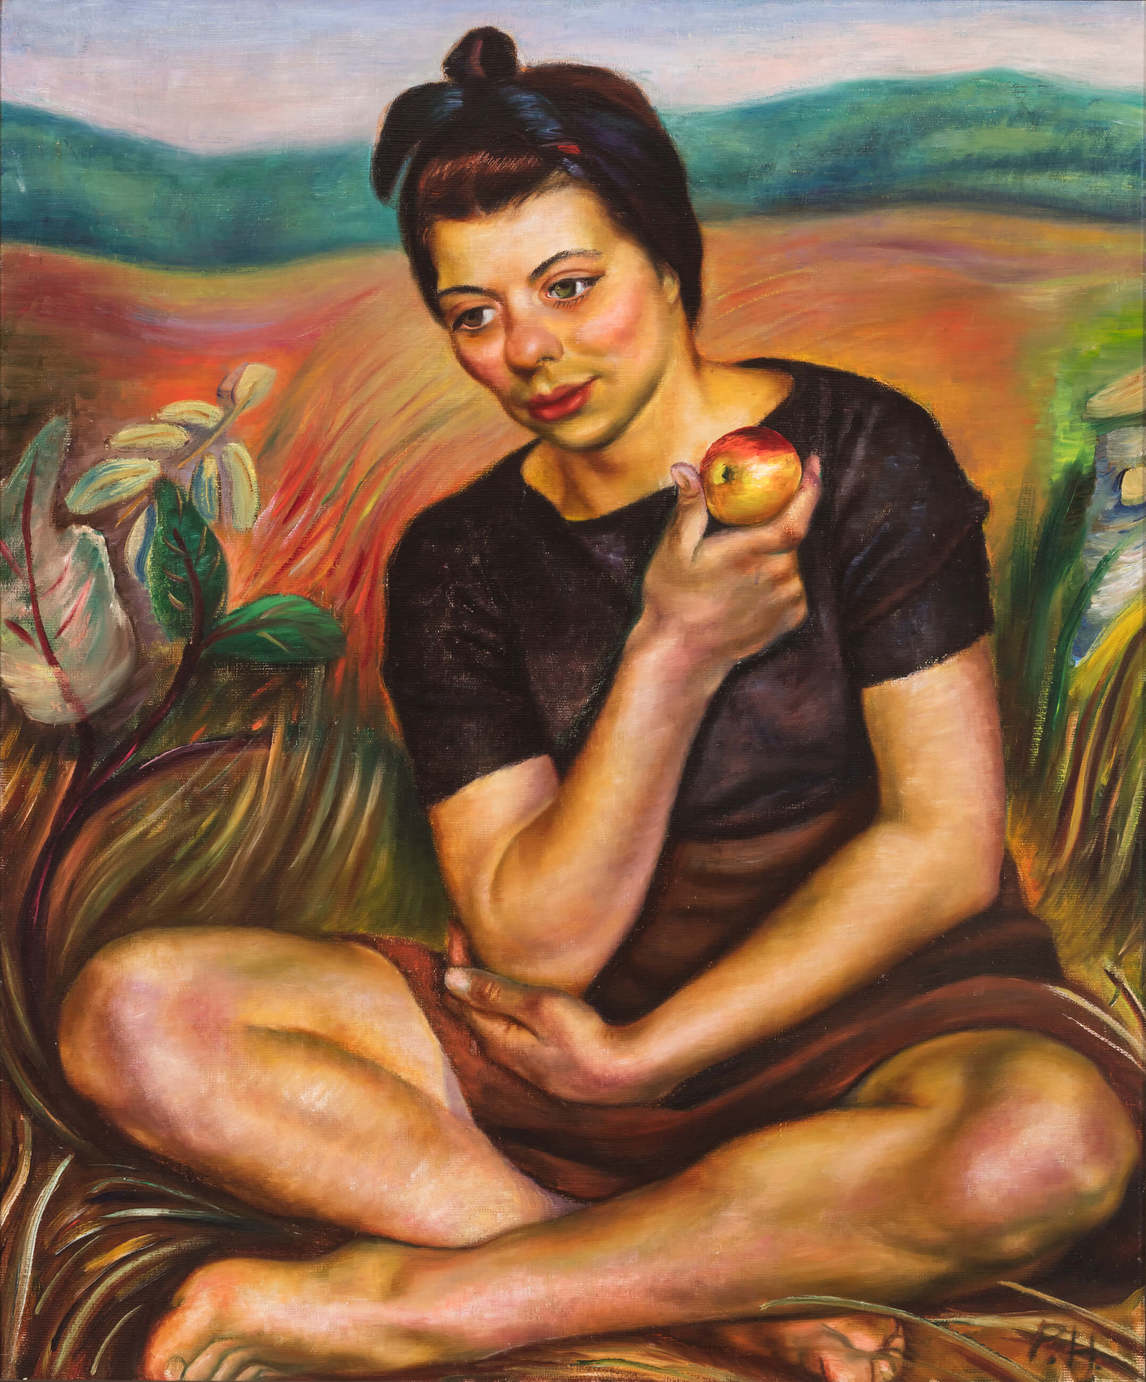 Art Canada Institute, Prudence Heward, Autumn (Girl with an Apple), 1942